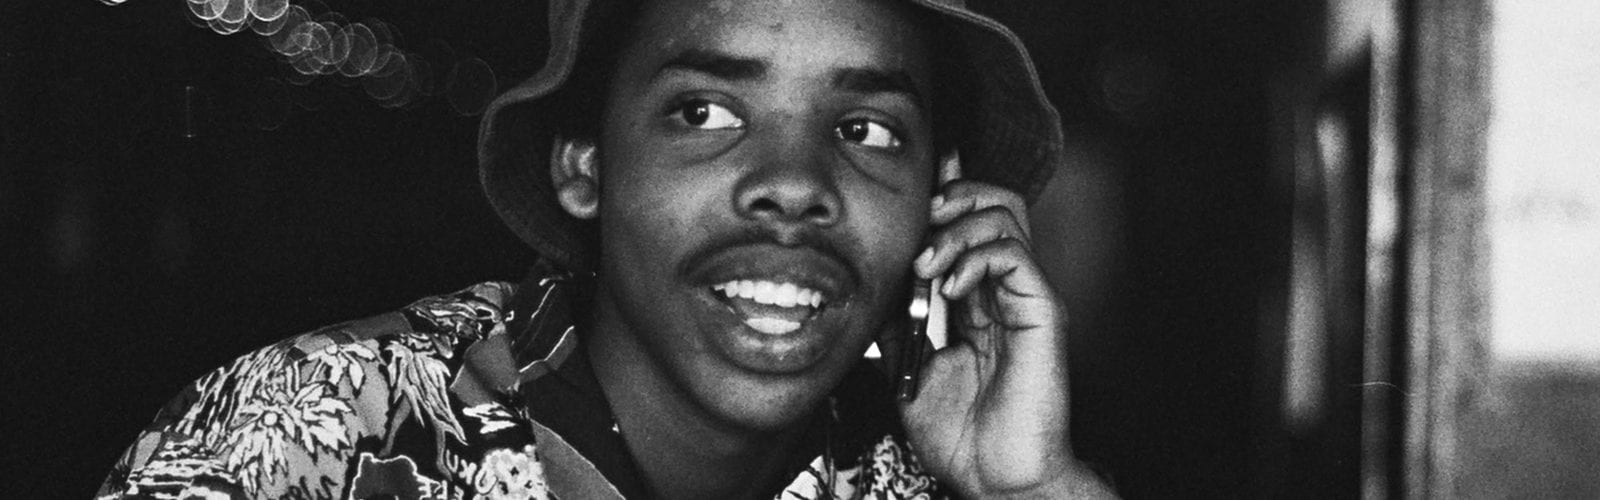 Earl Sweatshirt Cancels European Shows Citing Anxiety, Depression